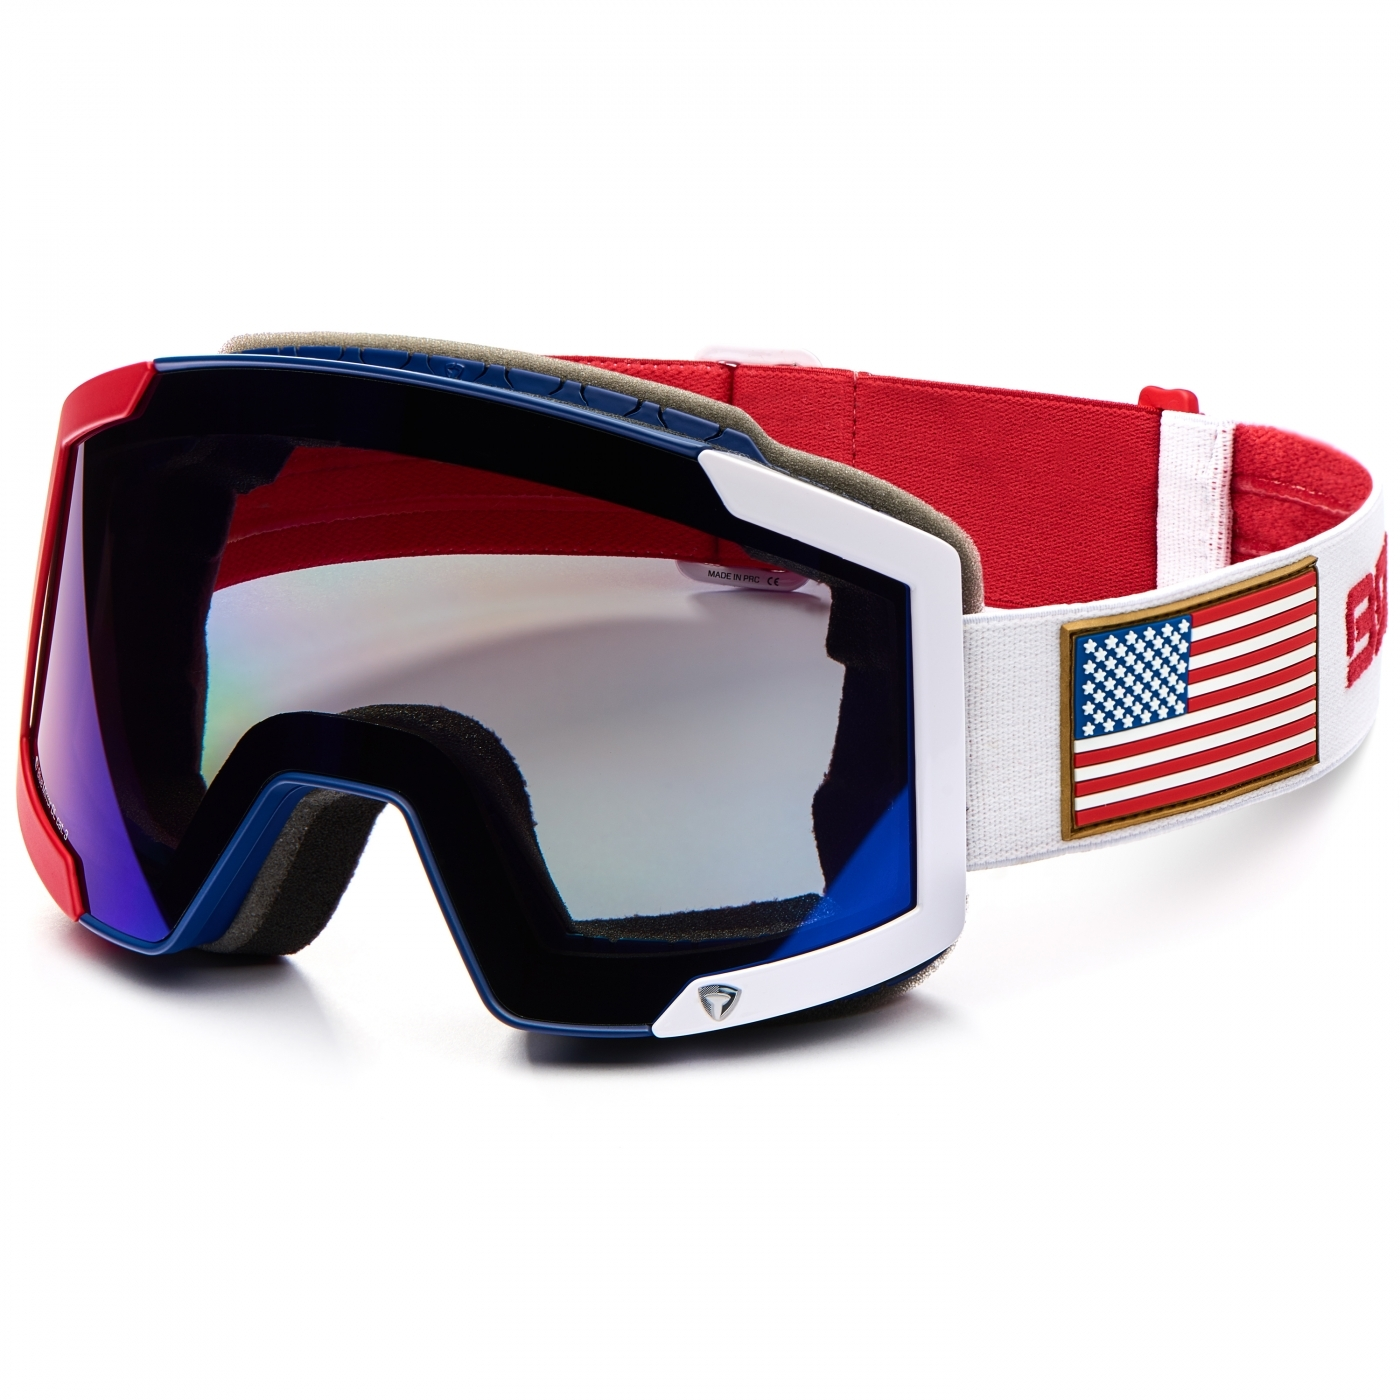 9d04cc197 Masque De Ski Briko Lava 7.6 2 Lenses Ussa Red Blue White | Alltricks.com